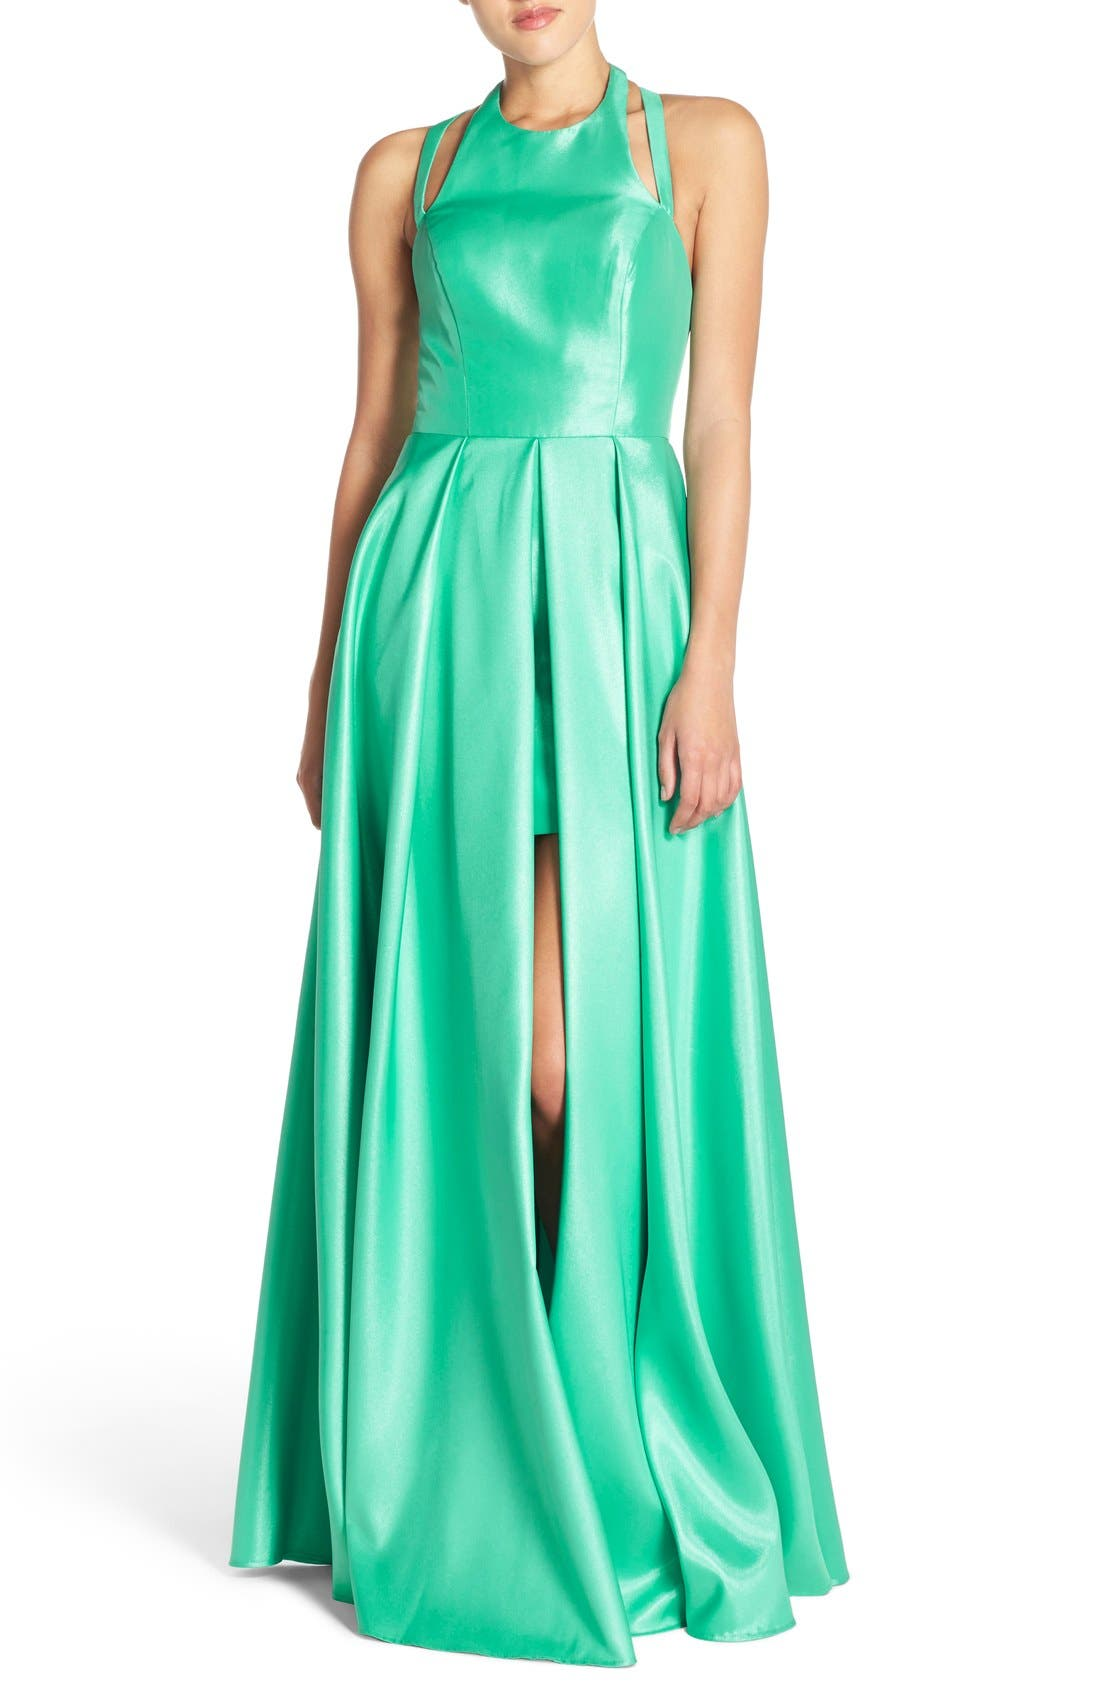 FAVIANA Shimmer Satin Halter Gown with Underskirt, Main, color, 439